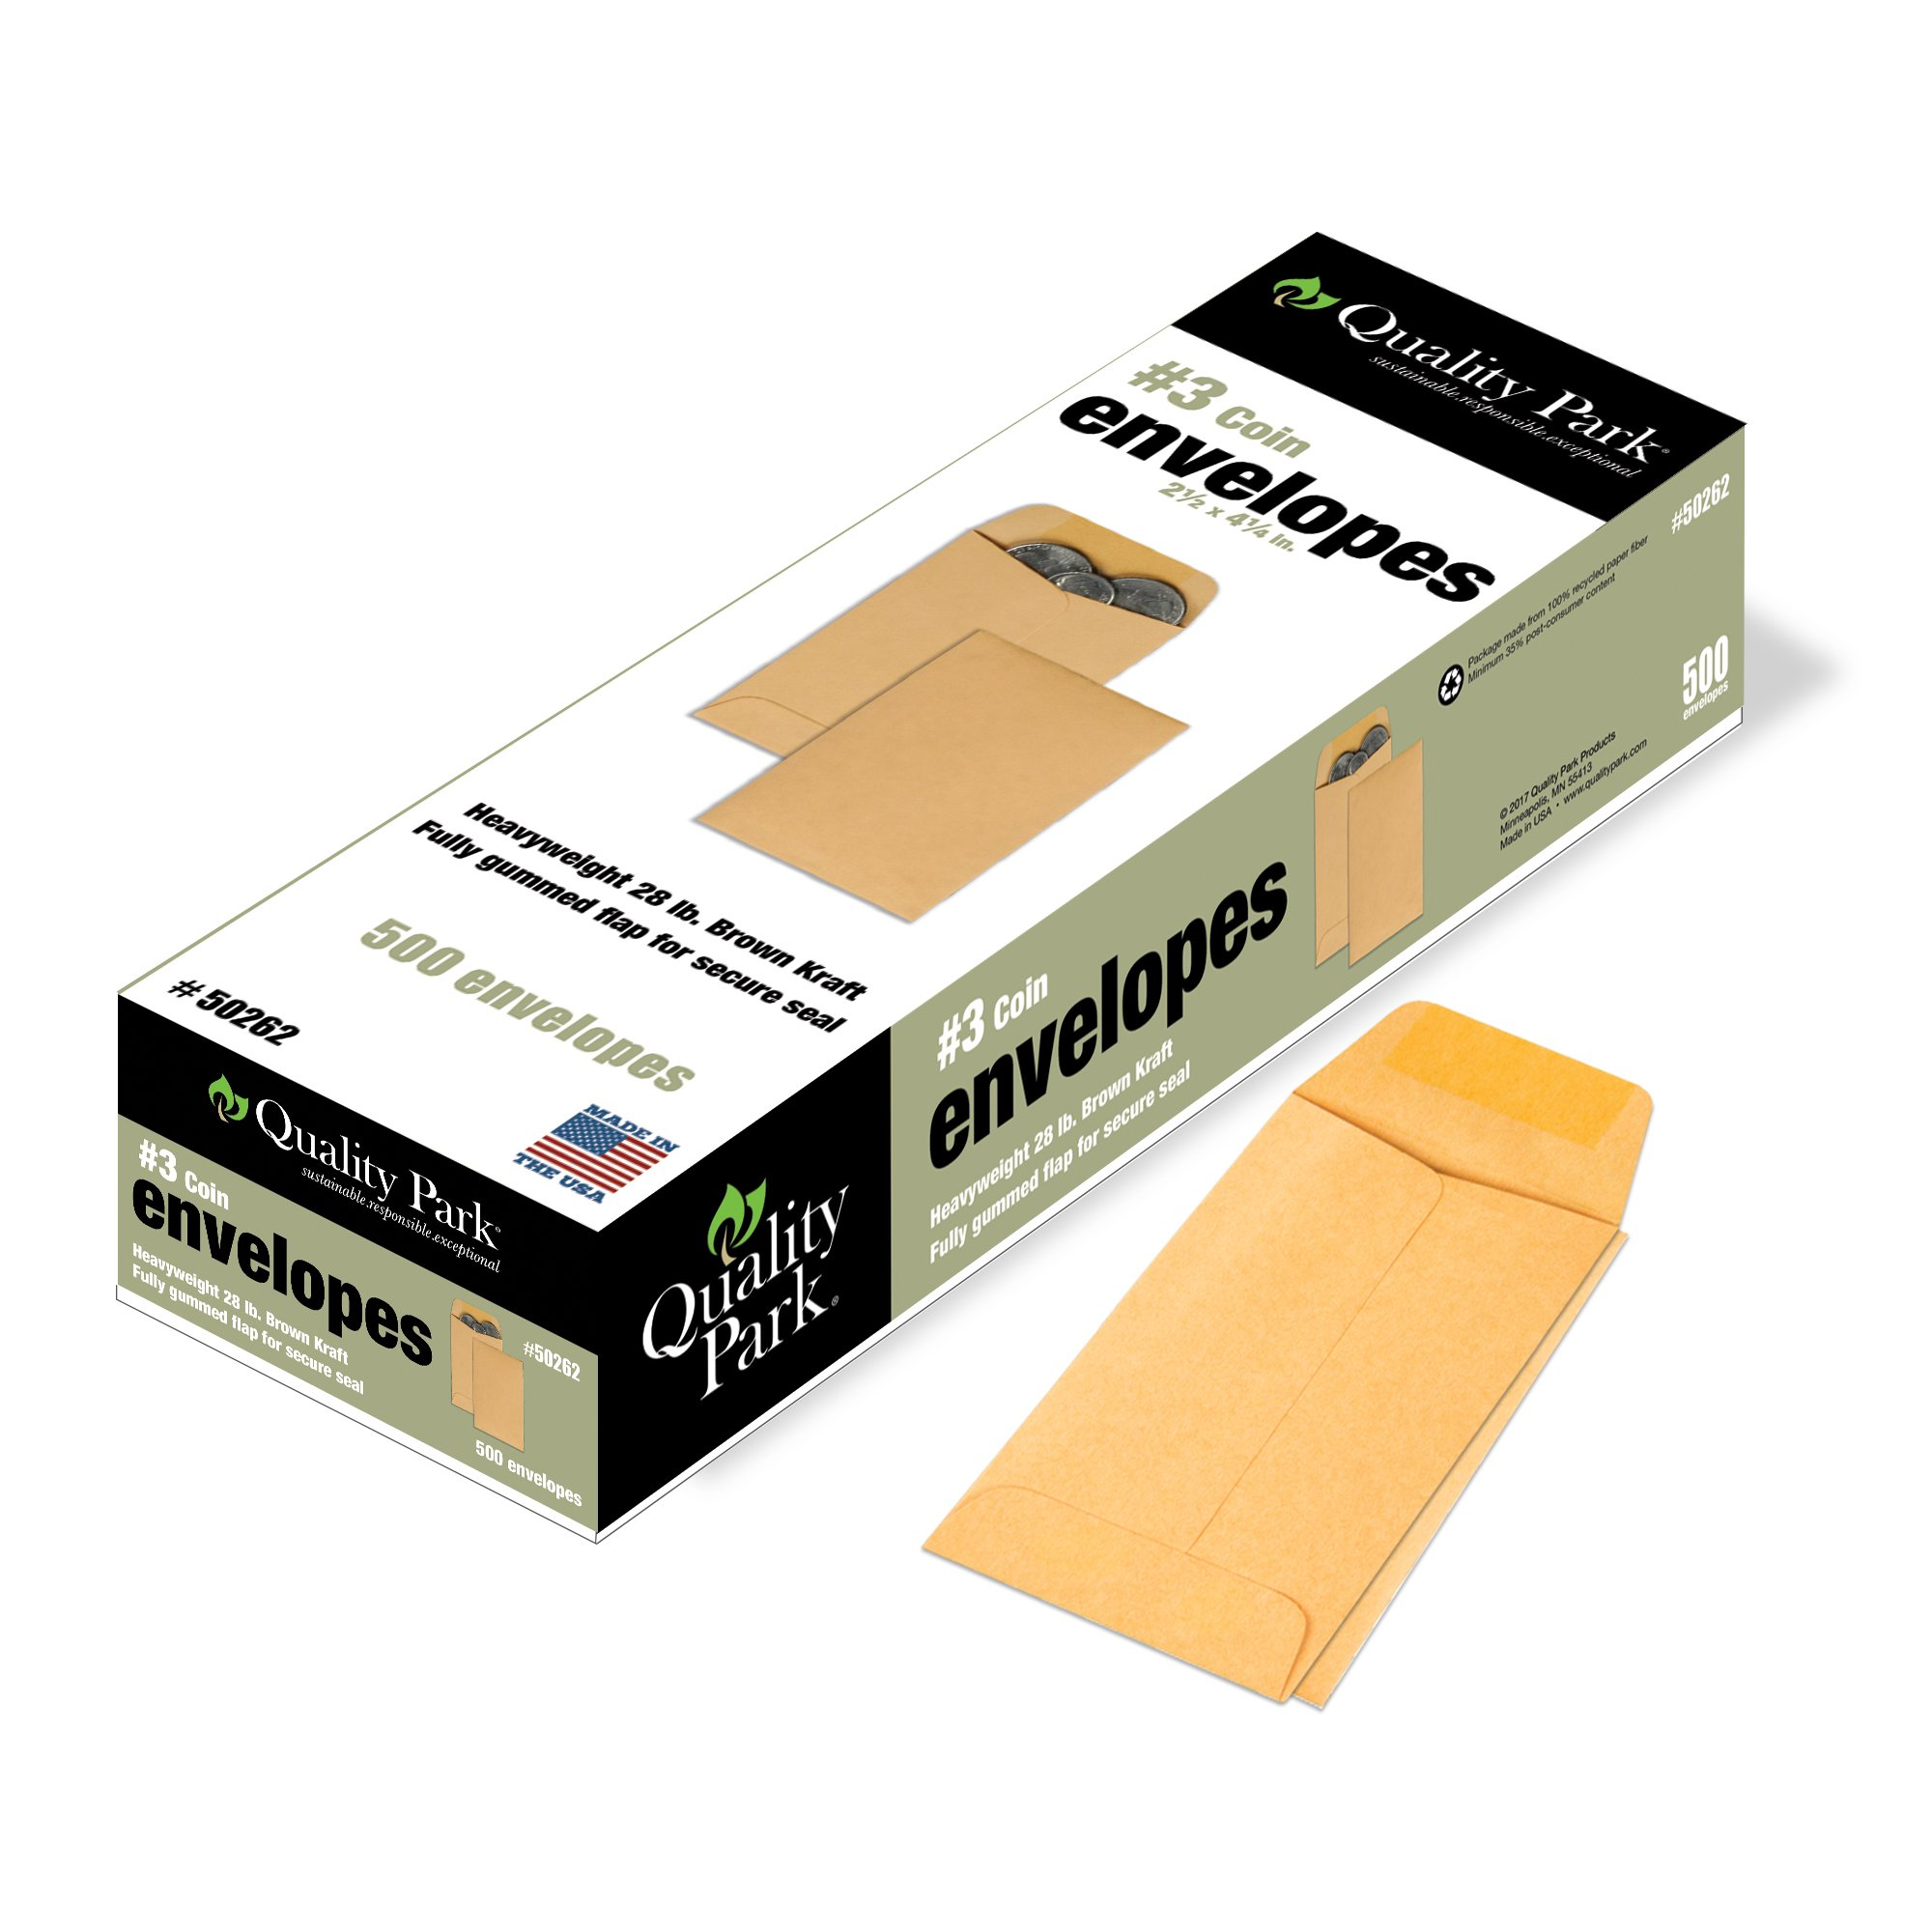 Quality Park Coin/Small Parts Envelopes, 3, Brown Kraft, 2.5 x 4.25-Inches, Box of 500 (50262)